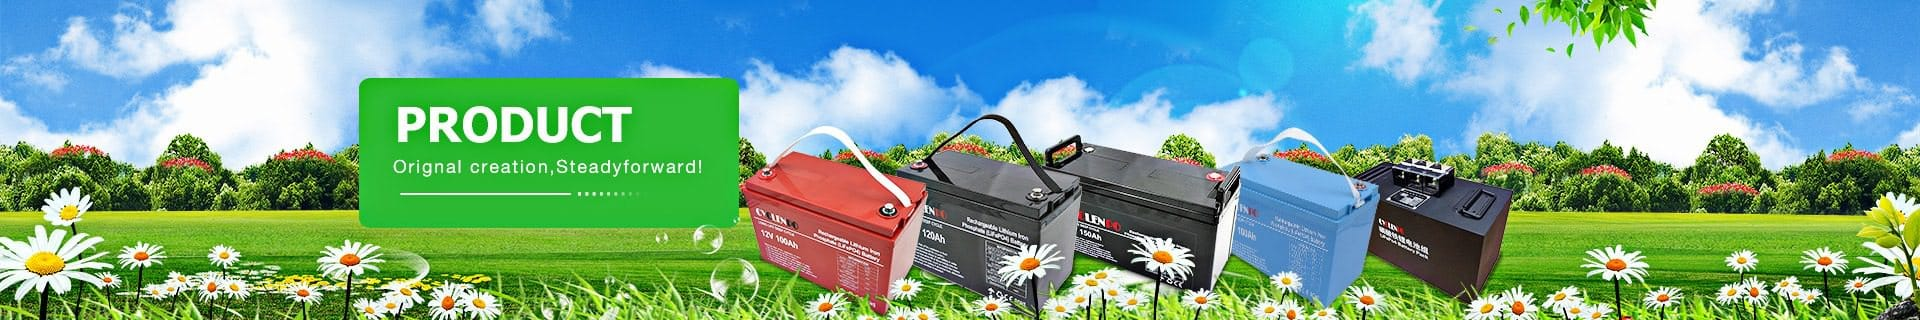 12v 10ah lithium ion battery, lifepo4 12v 10ah, 12v 10ah lithium battery, lifepo4 battery 12v 10ah